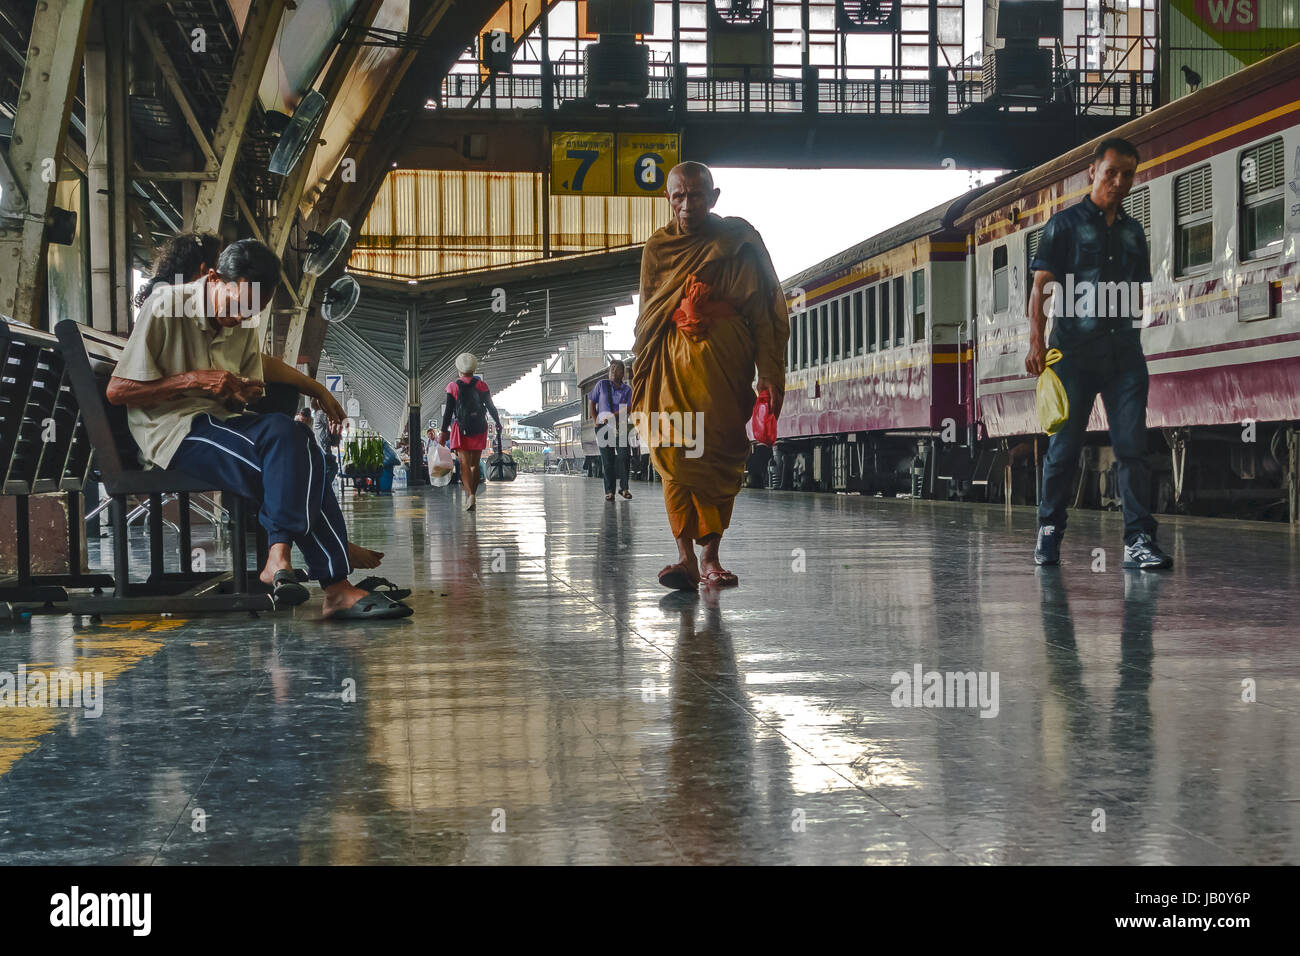 Hua Lamphong train station in Bangkok, Thailand. A monk and other travellers on platform with stationery train. - Stock Image